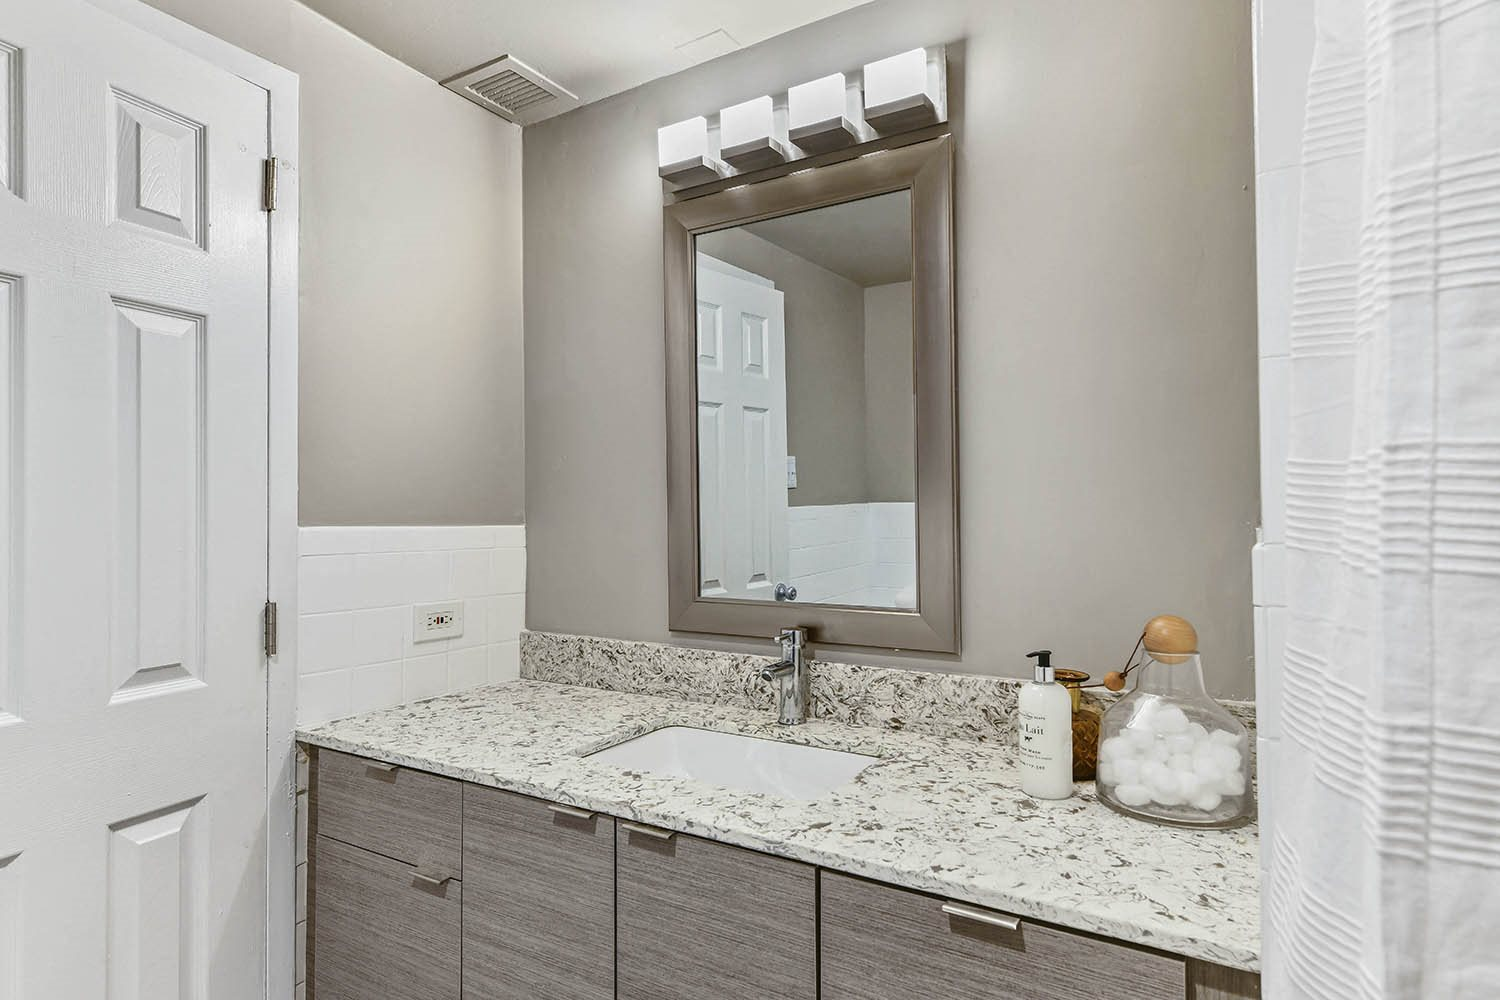 Custom Vanity Lighting at CityView on Meridian, Indiana,46208